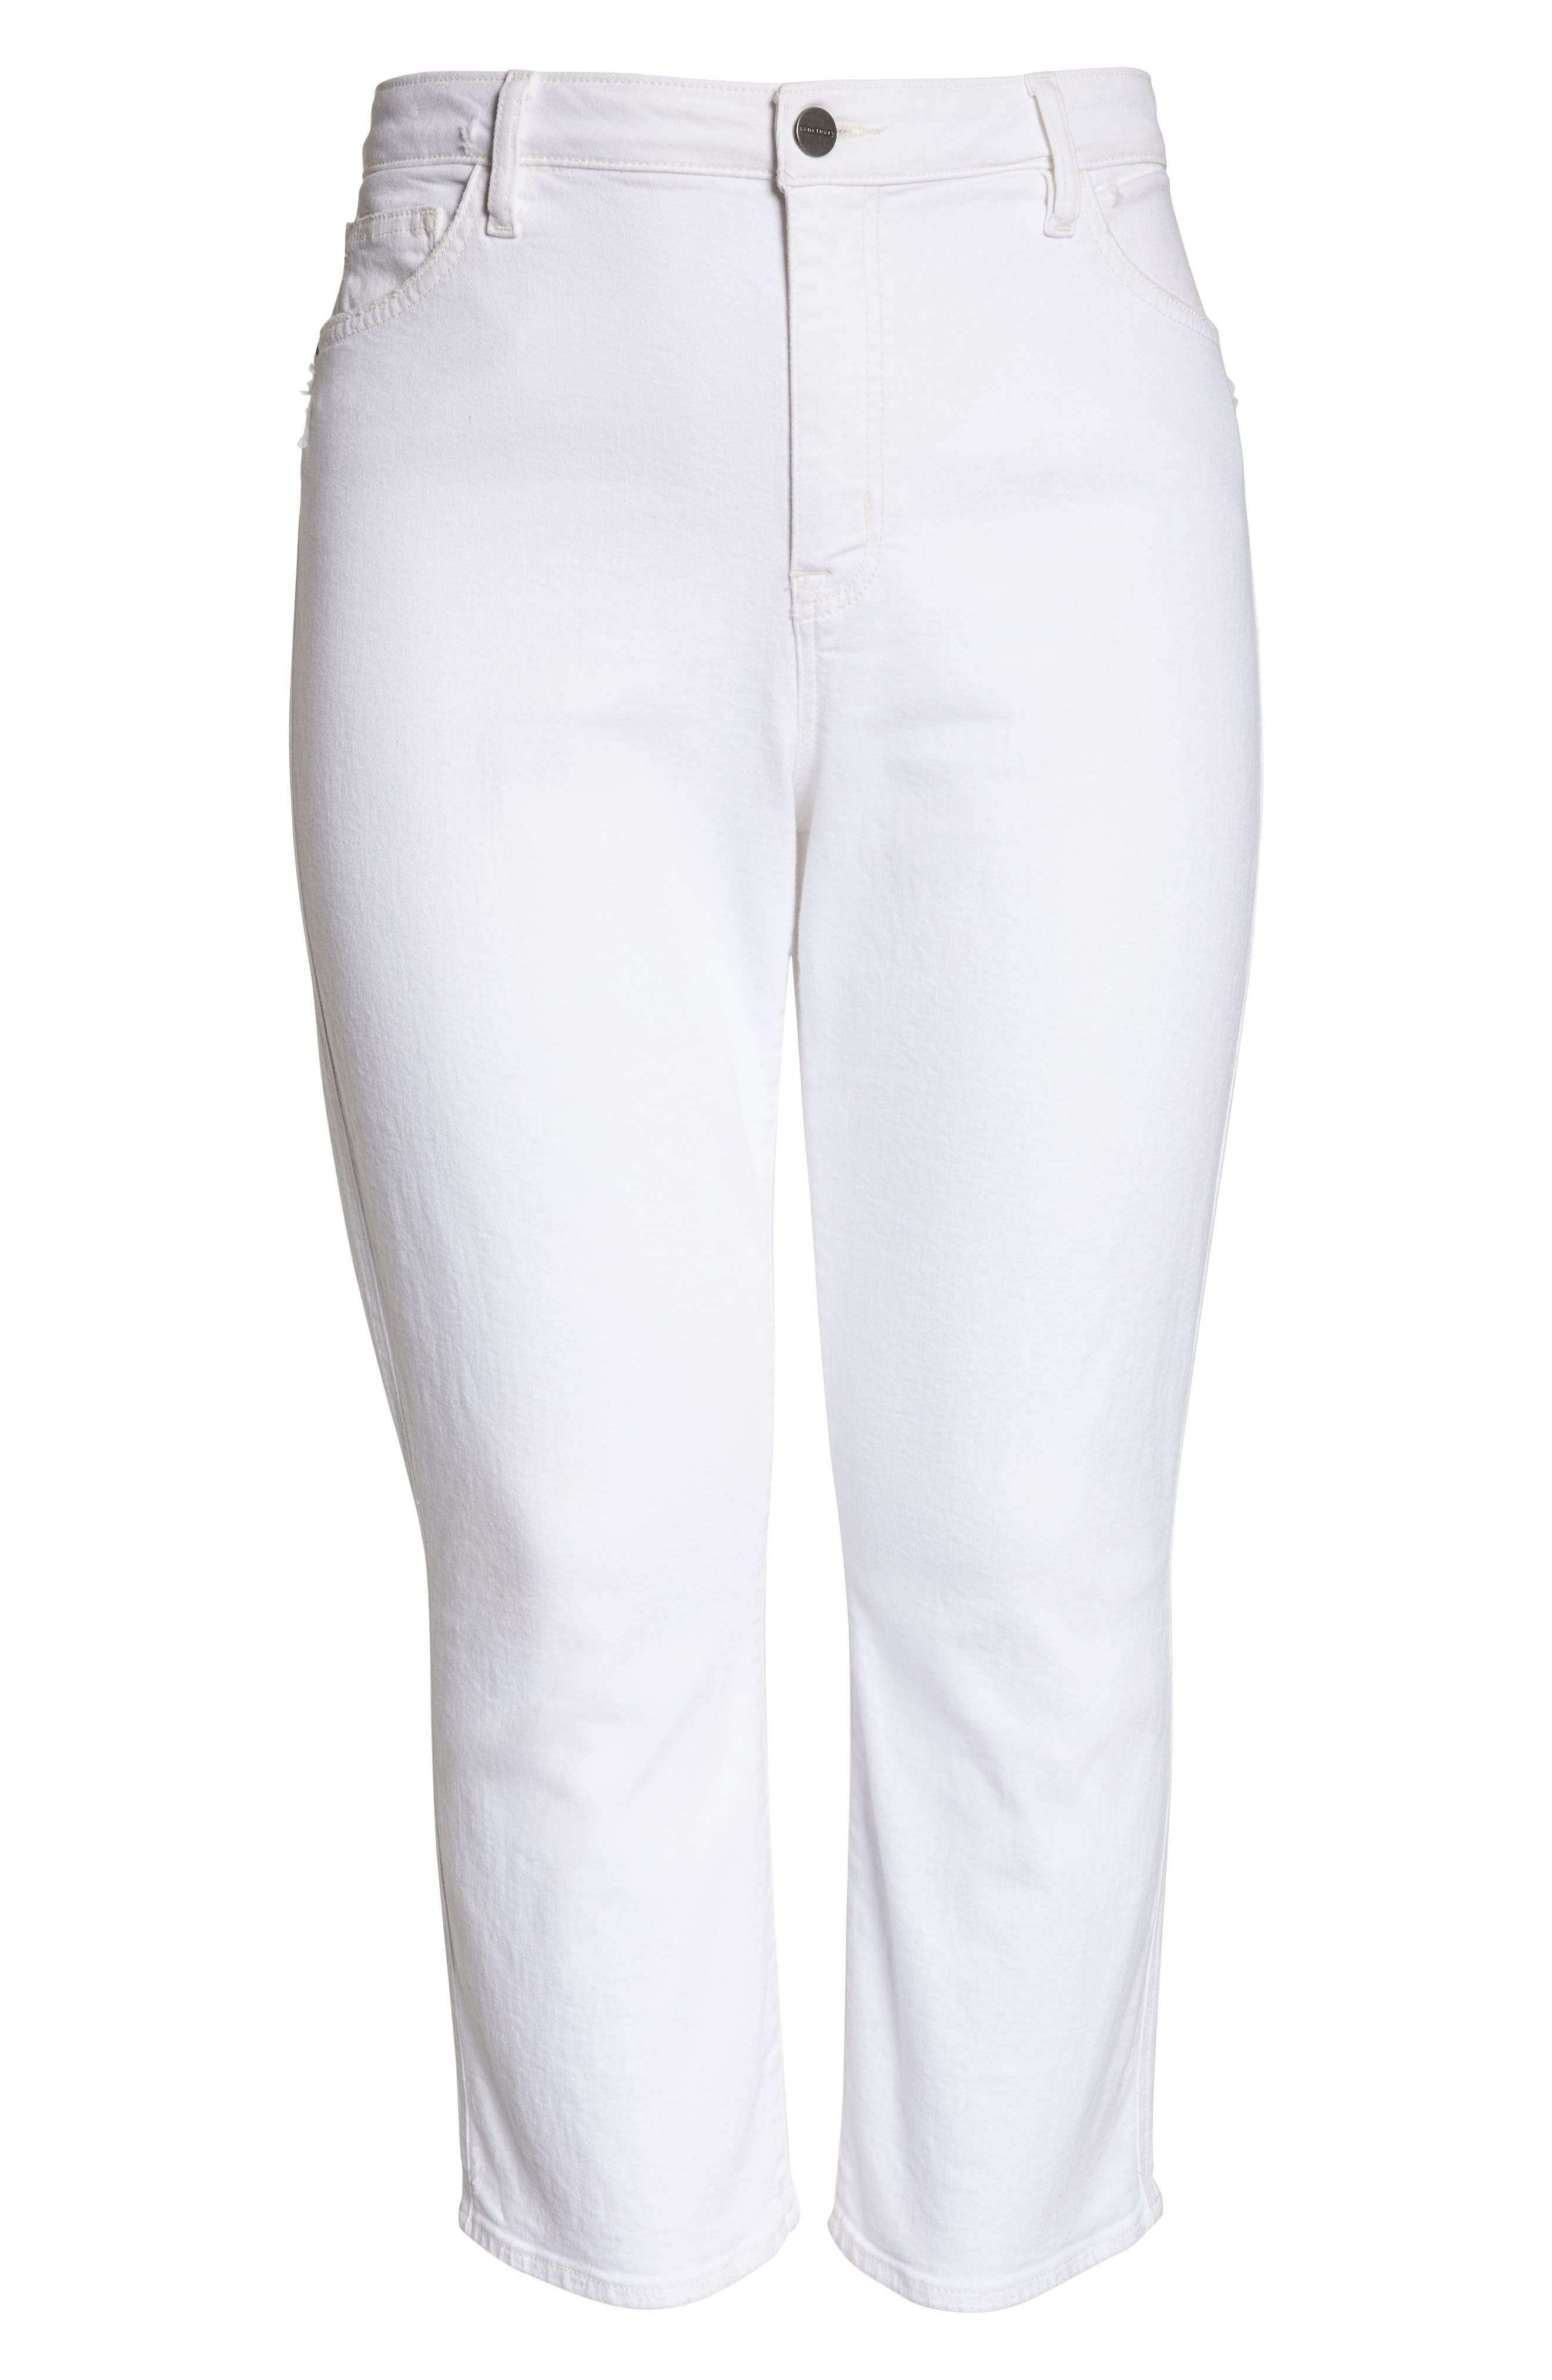 Modern High Rise Straight Leg Crop Jeans,                             Alternate thumbnail 7, color,                             ANGLNO WHT